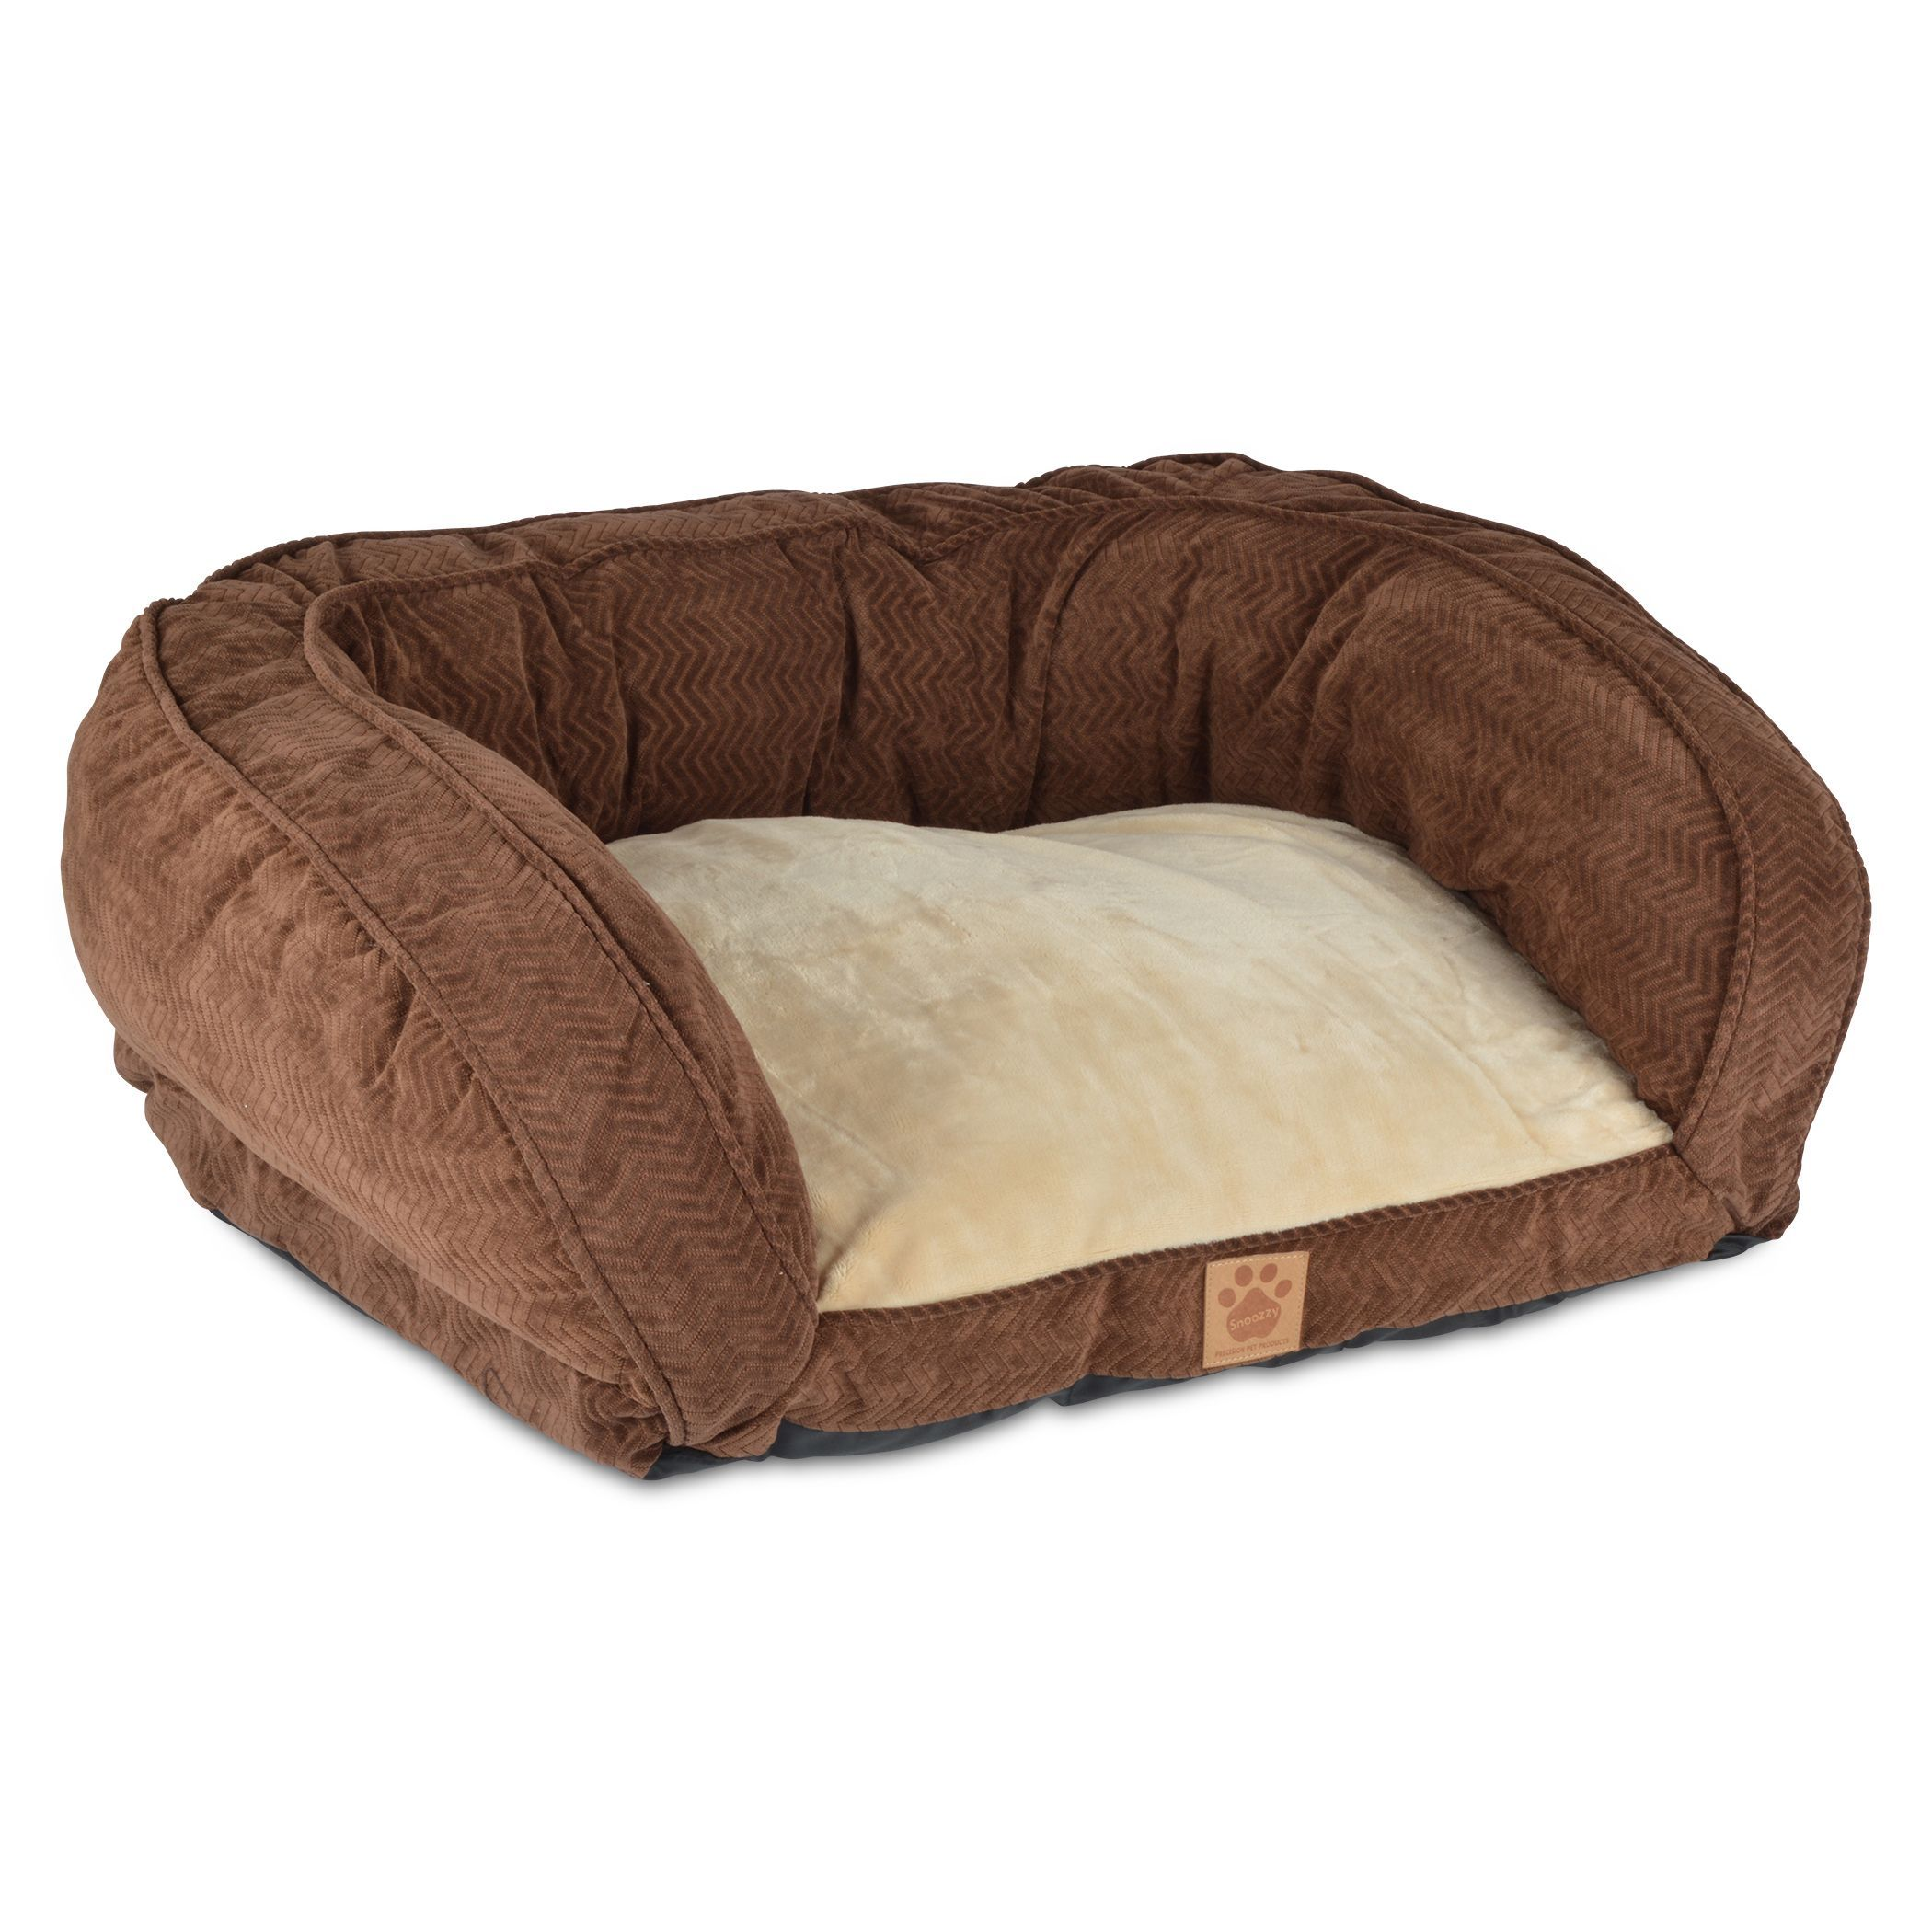 Overstock Com Online Shopping Bedding Furniture Electronics Jewelry Clothing More Couch Pet Bed Pet Sofa Bed Dog Couch Bed